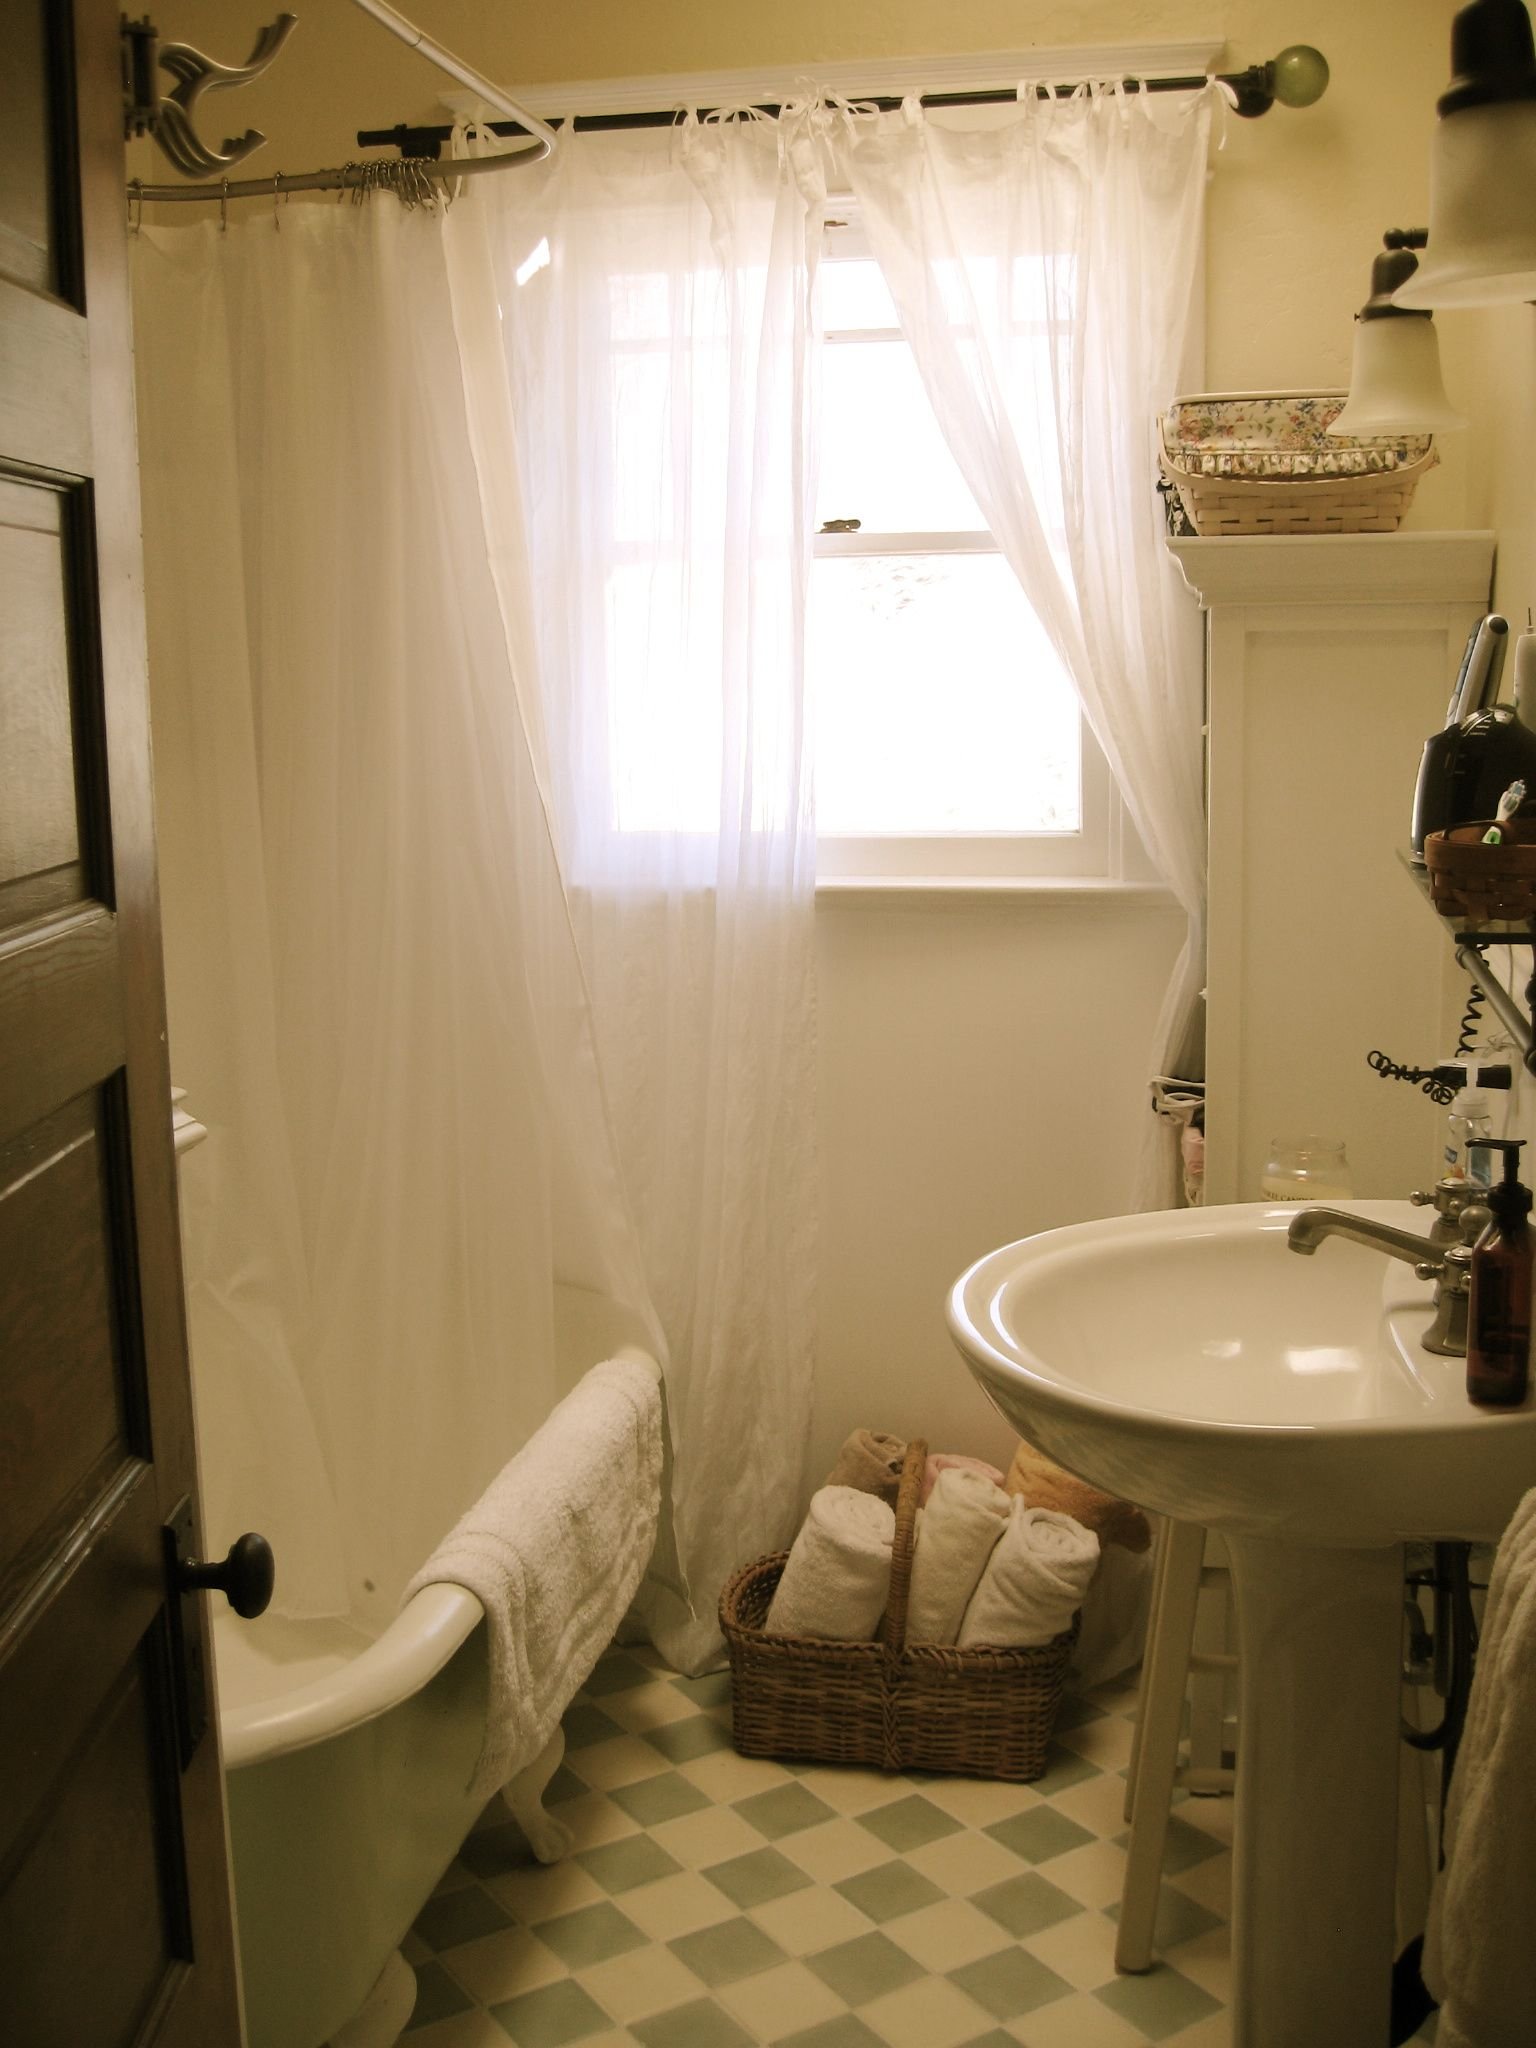 Pin by Kate on période | Pinterest | Clawfoot tub shower, Shower ...